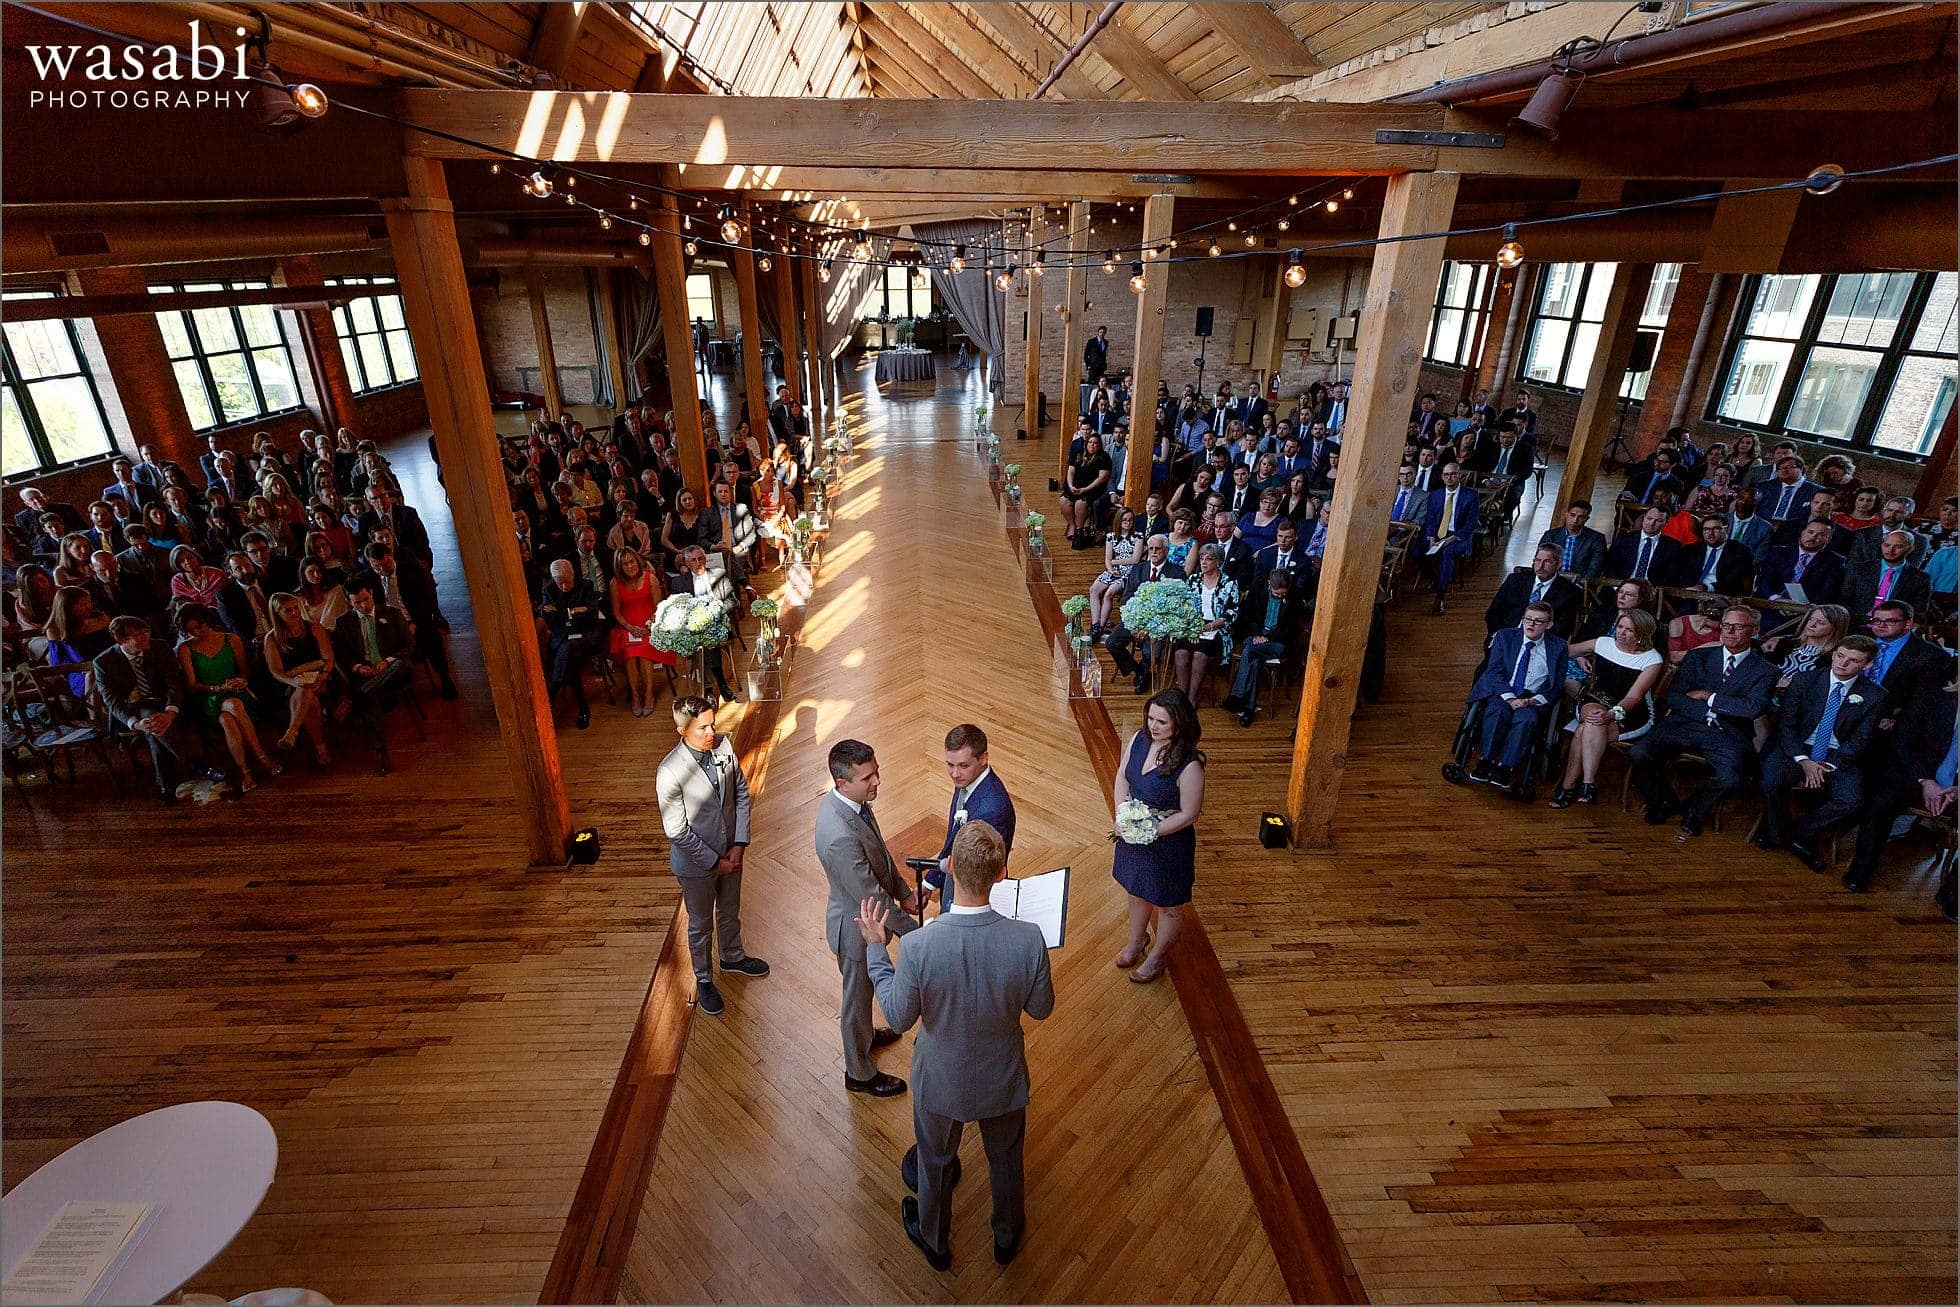 extreme wide angle showing entire venue during a wedding ceremony at Skyline Loft at Bridgeport Art Center in Chicago